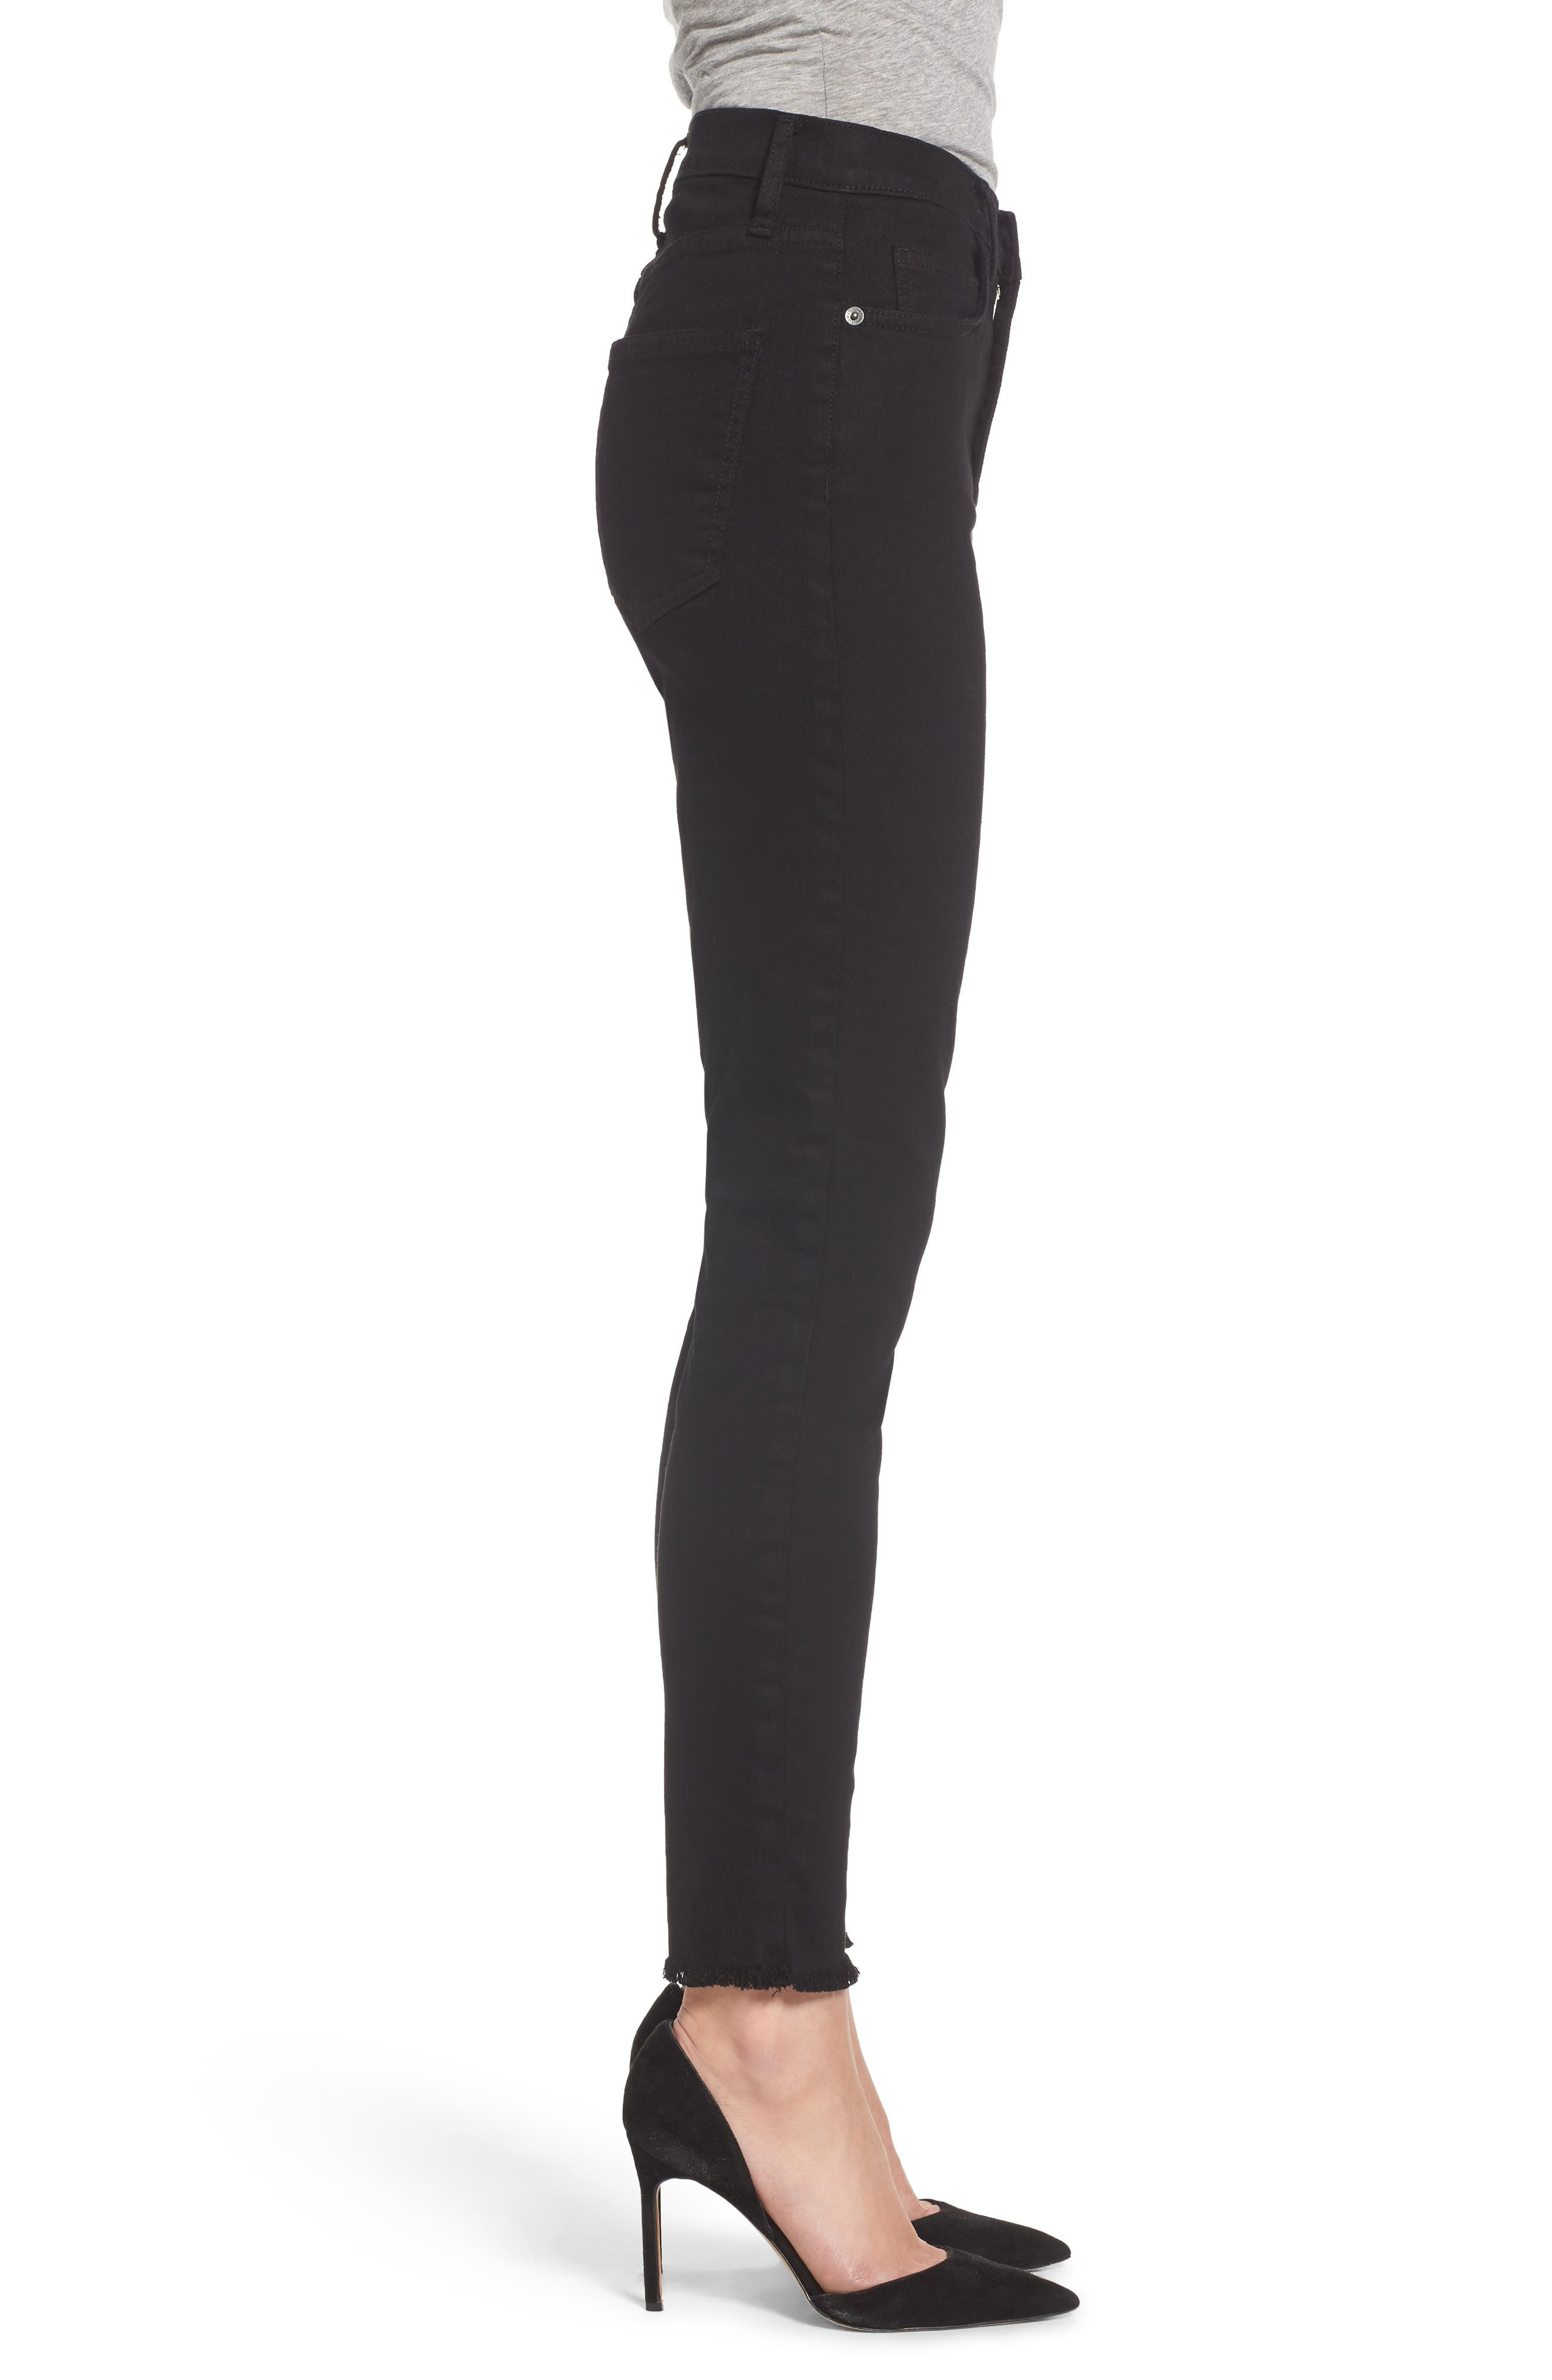 Alternate Image 3  - Current/Elliott The Super High Waist Stiletto Ankle Skinny Jeans (Jet Black)